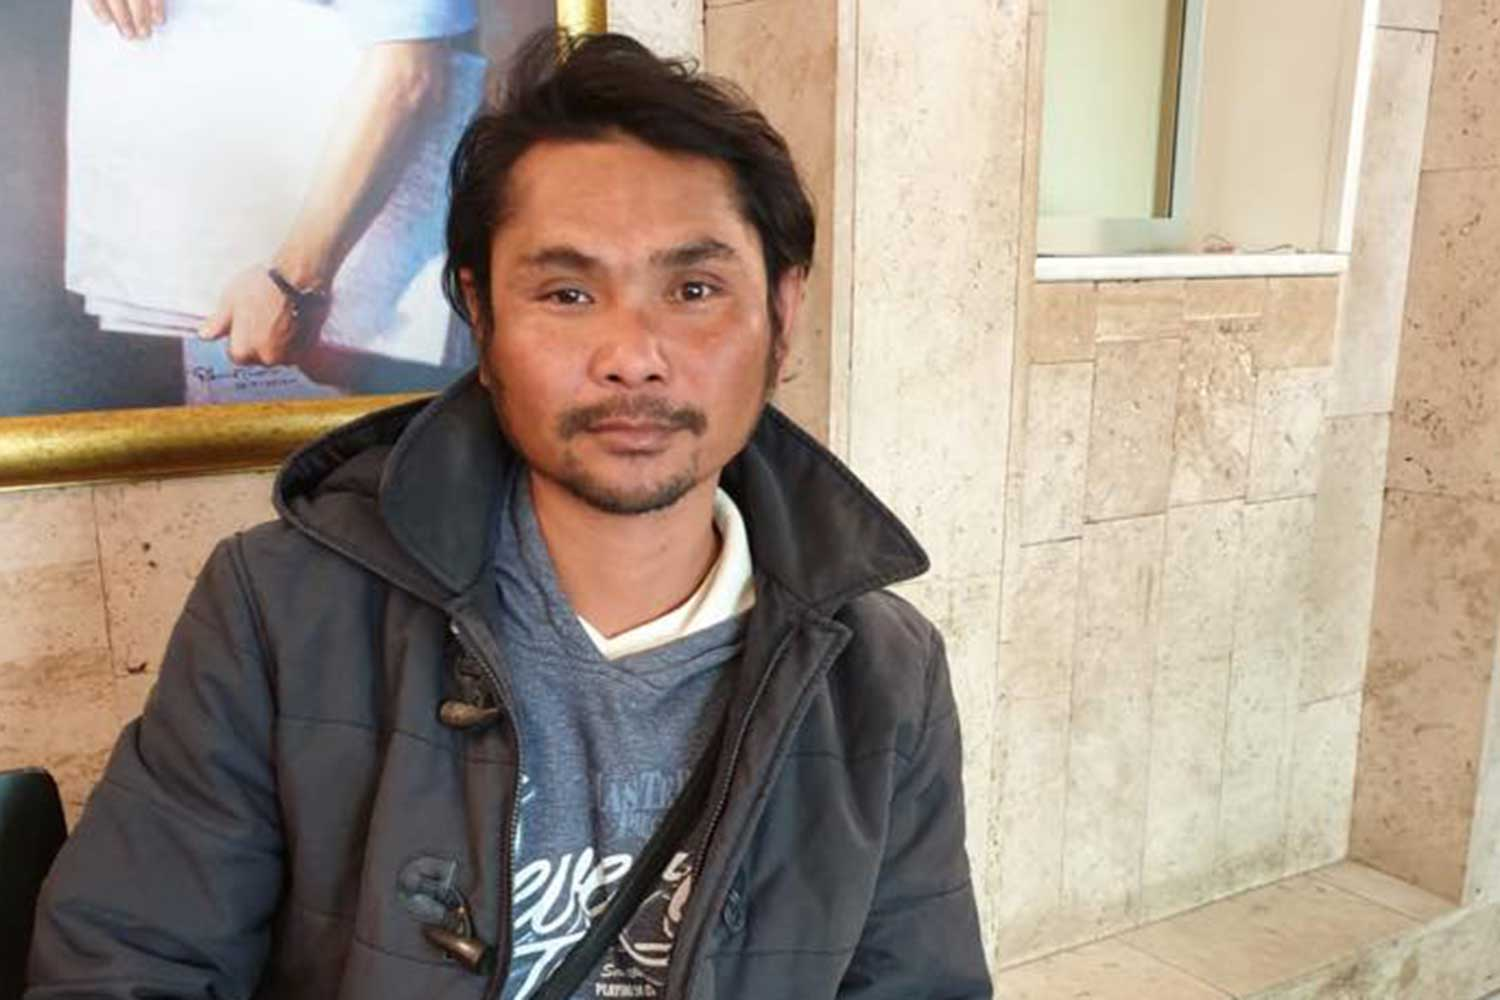 Uthai Waenbarb, 36, who was working as a chef in Budapest, found alive in Moscow after vanishing en route to Thailand in mid-June. (Photo taken from @rtemoscow Facebook page)